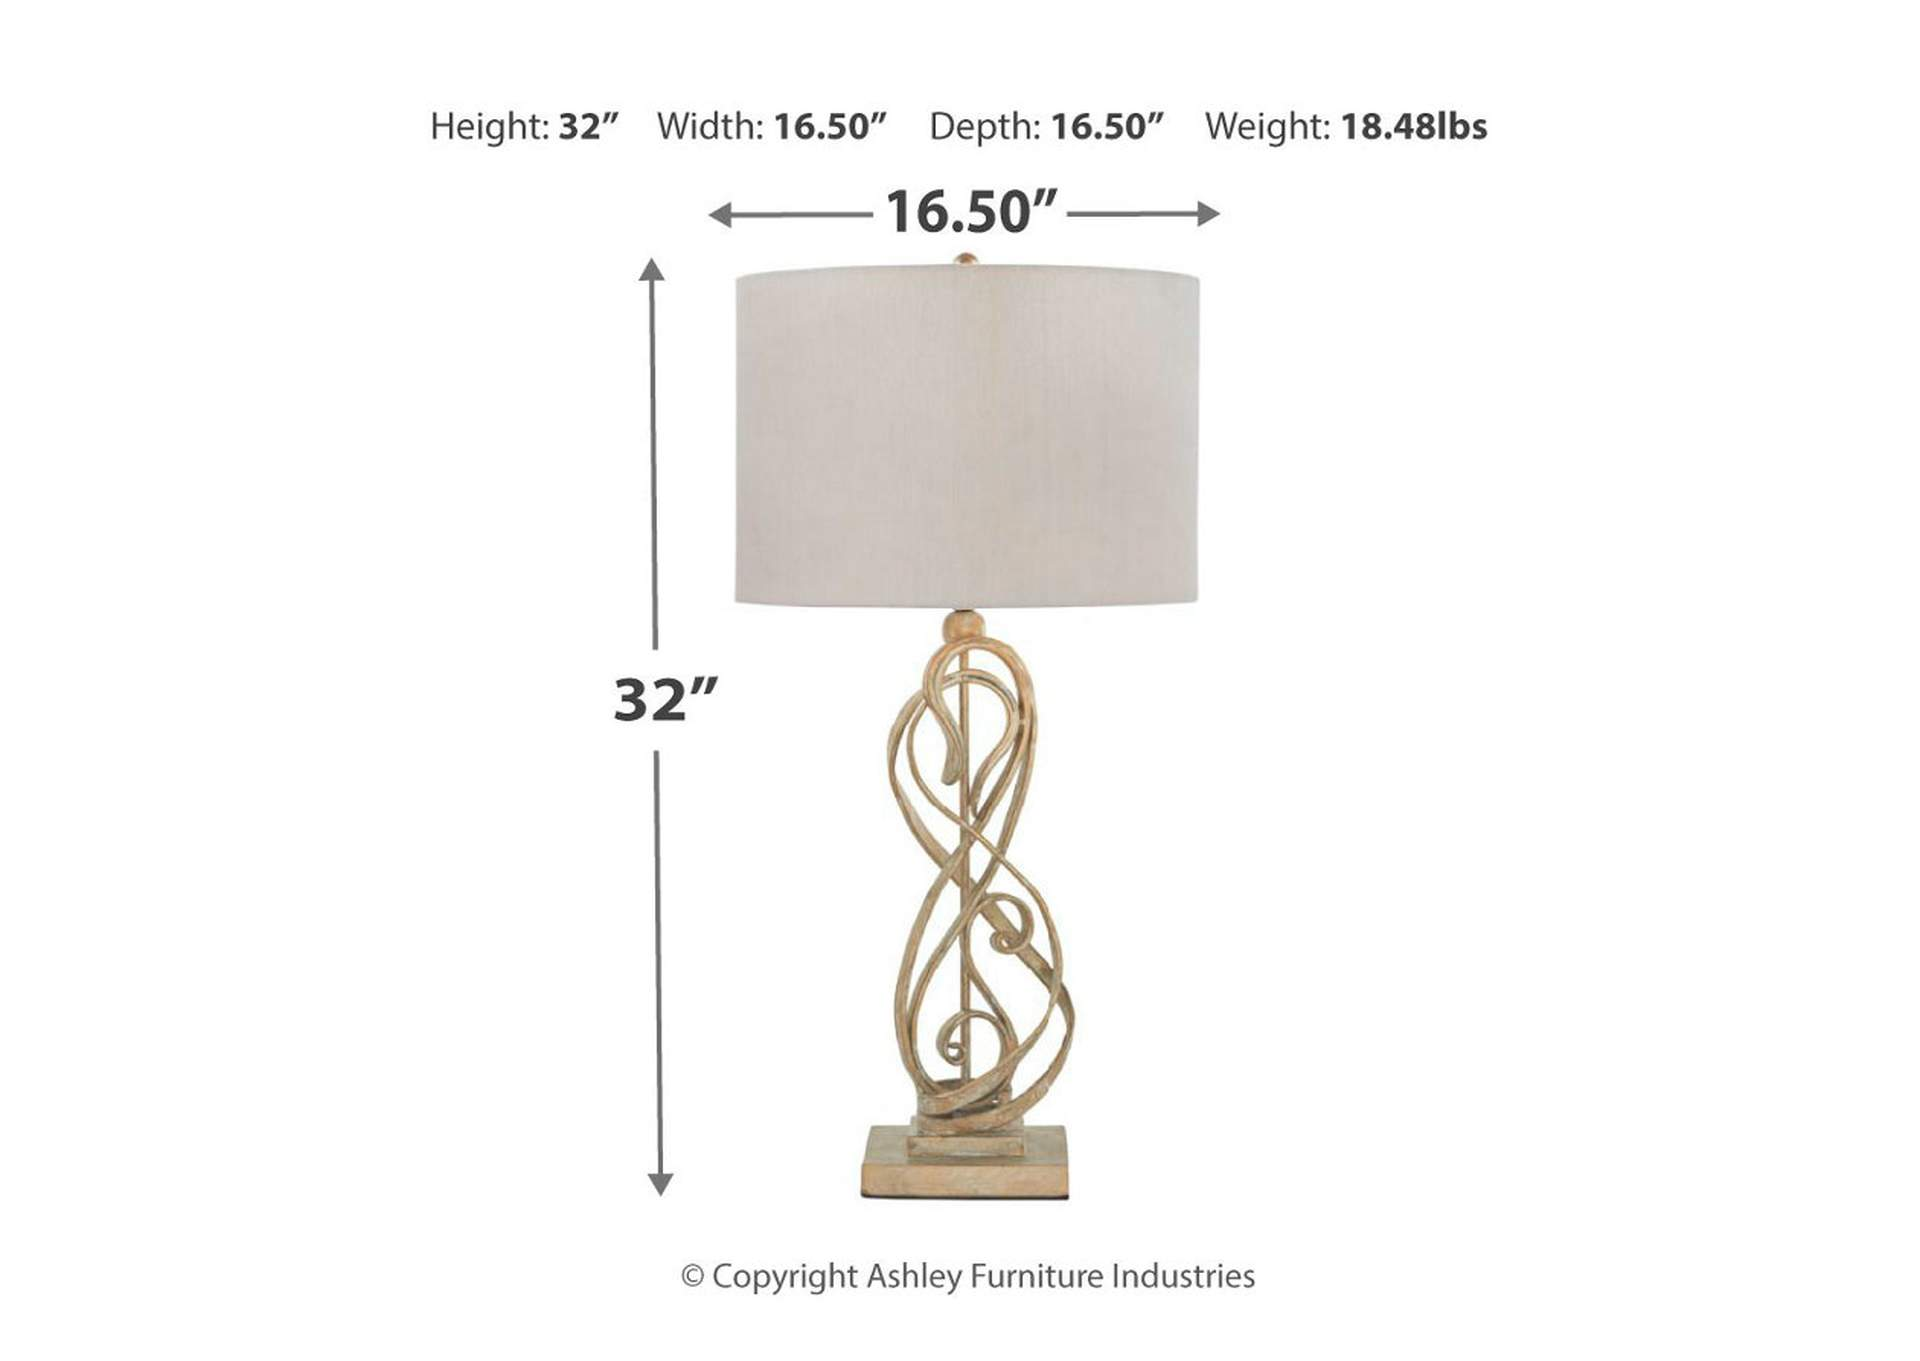 Edric Gold Table Lamp,Signature Design By Ashley